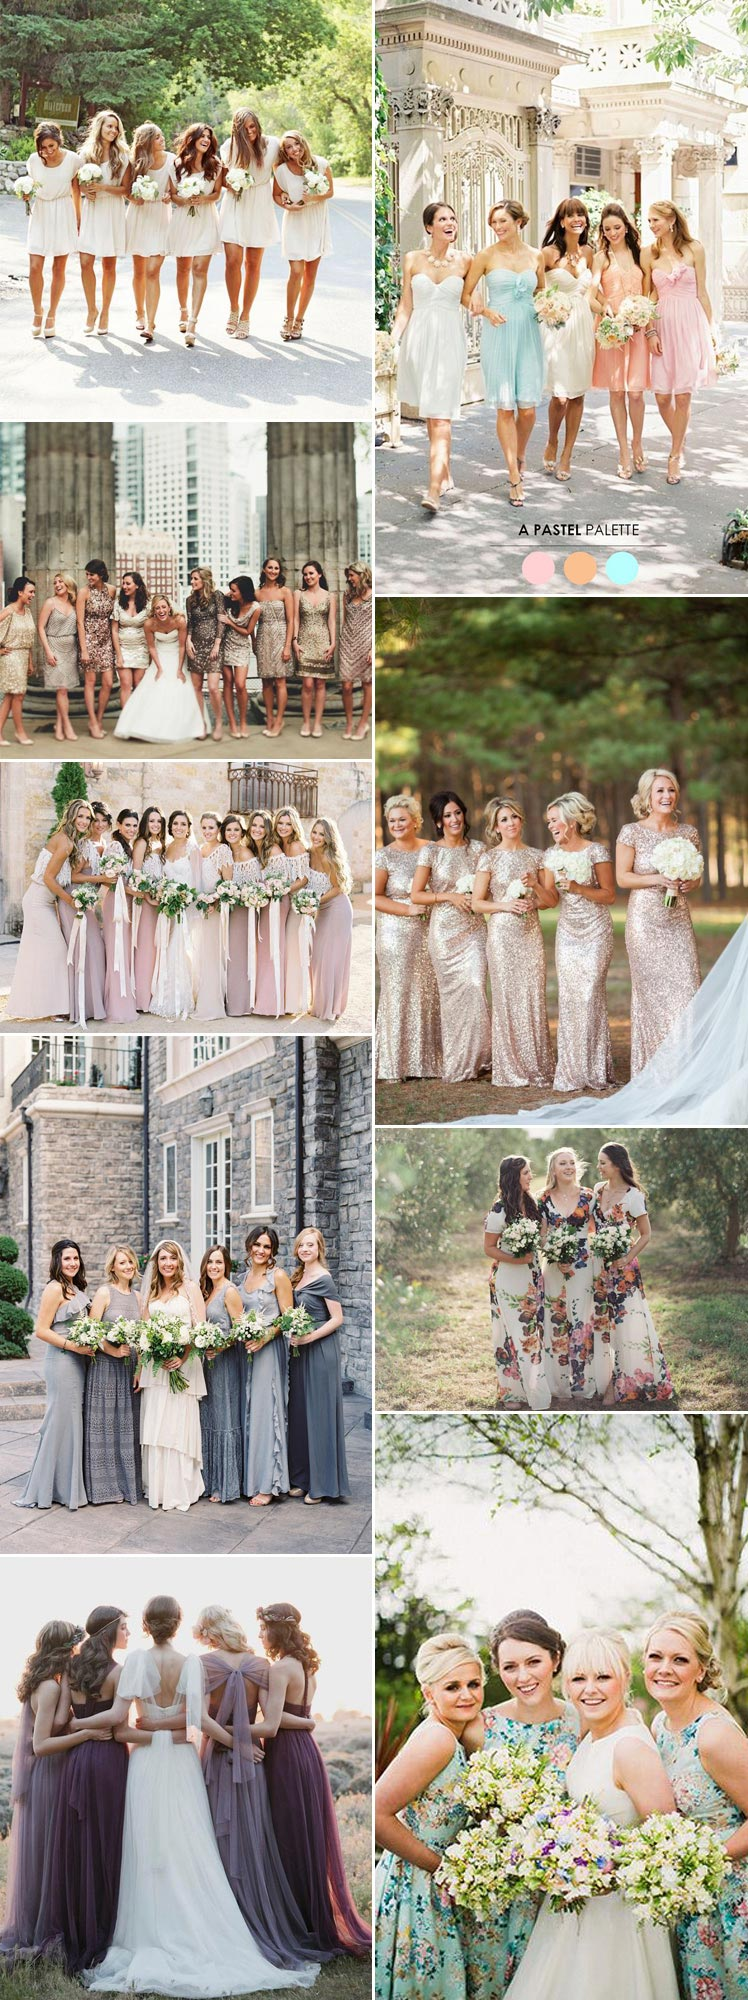 Metallics, florals, mismatched - an array of bridesmaid styles